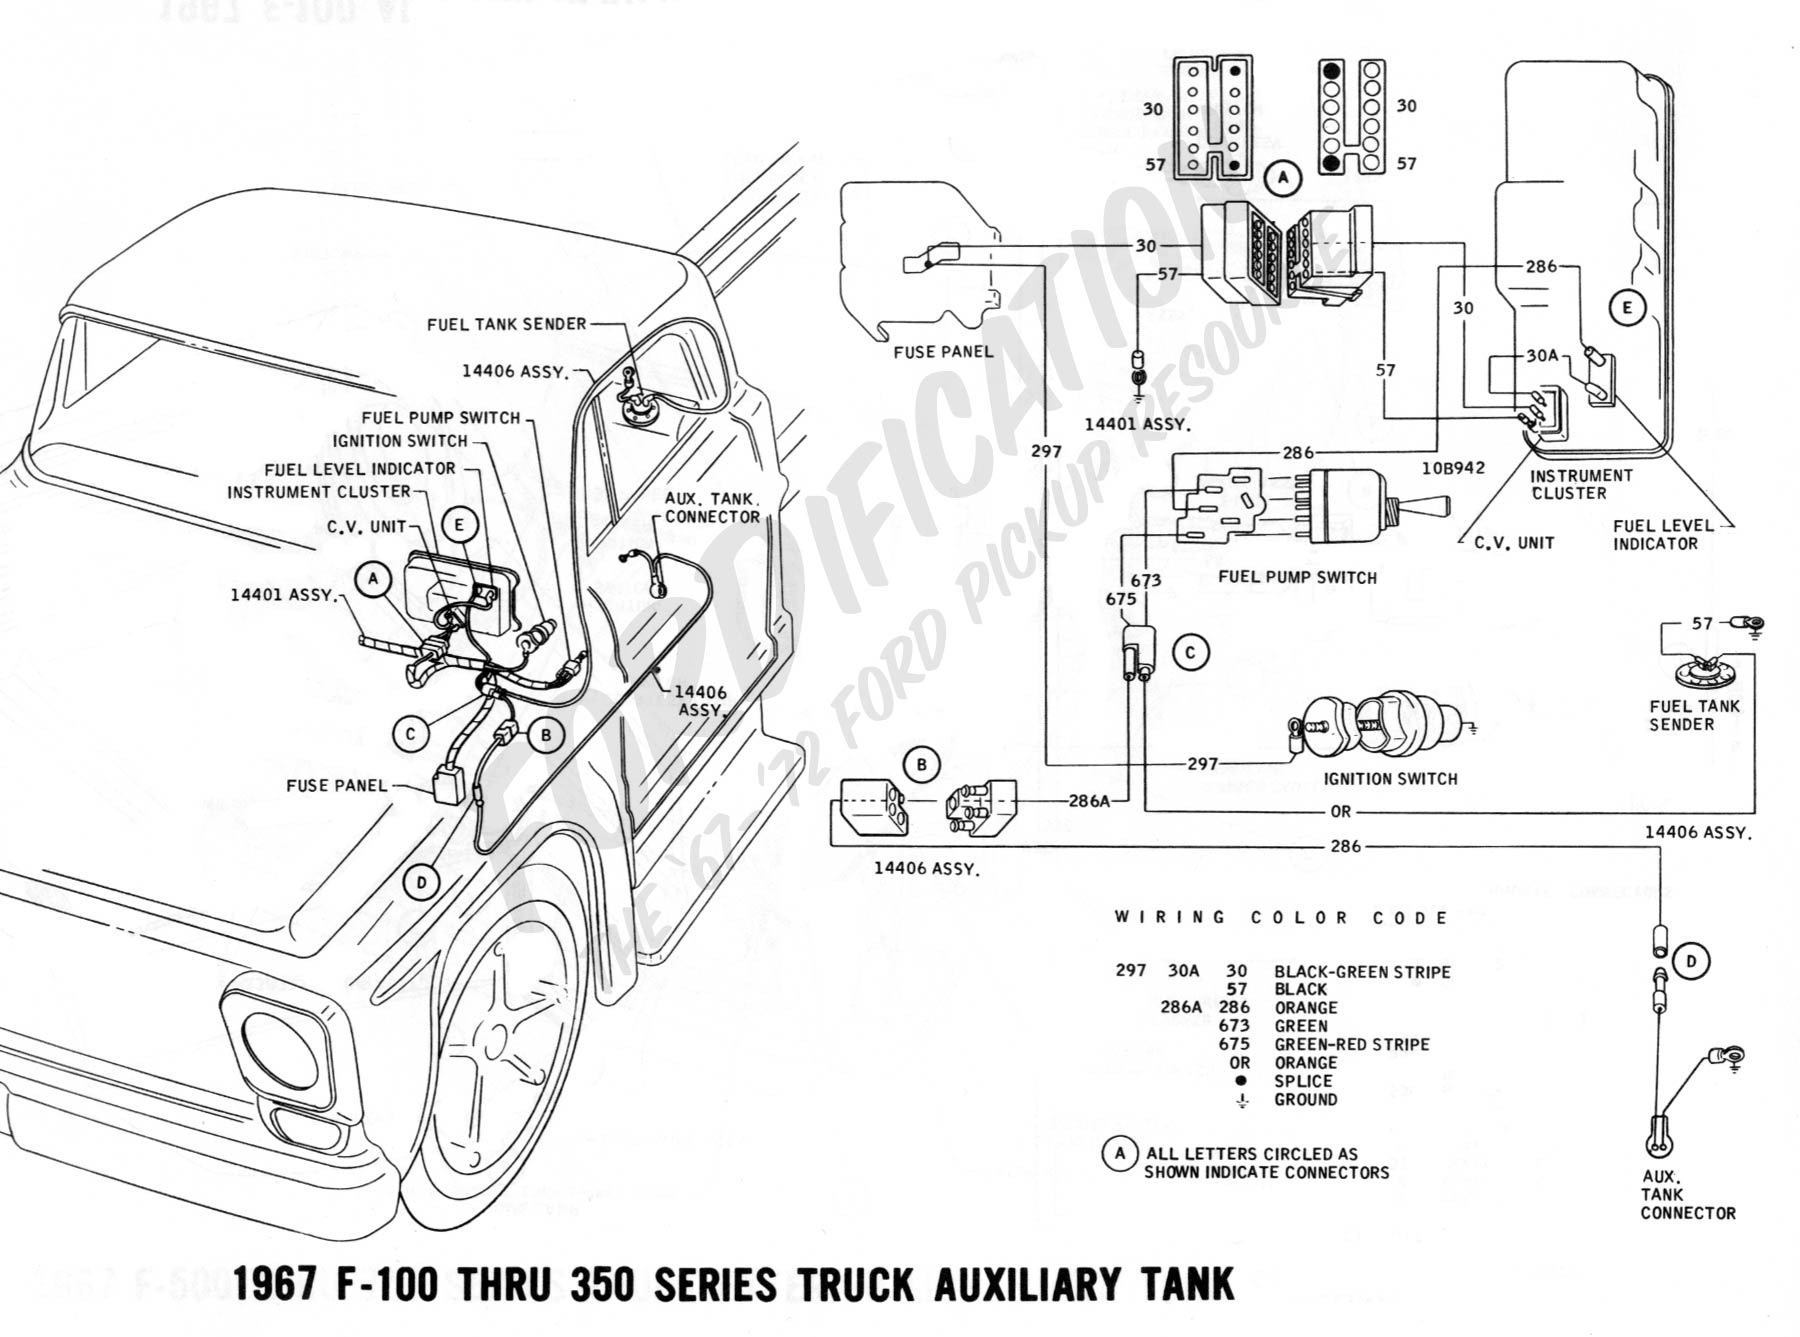 Chevrolet Truck Wiper Wiring Diagram Library 1980 Chevy Motor 1967 F 100 Thru 350 Auxiliary Fuel Tank